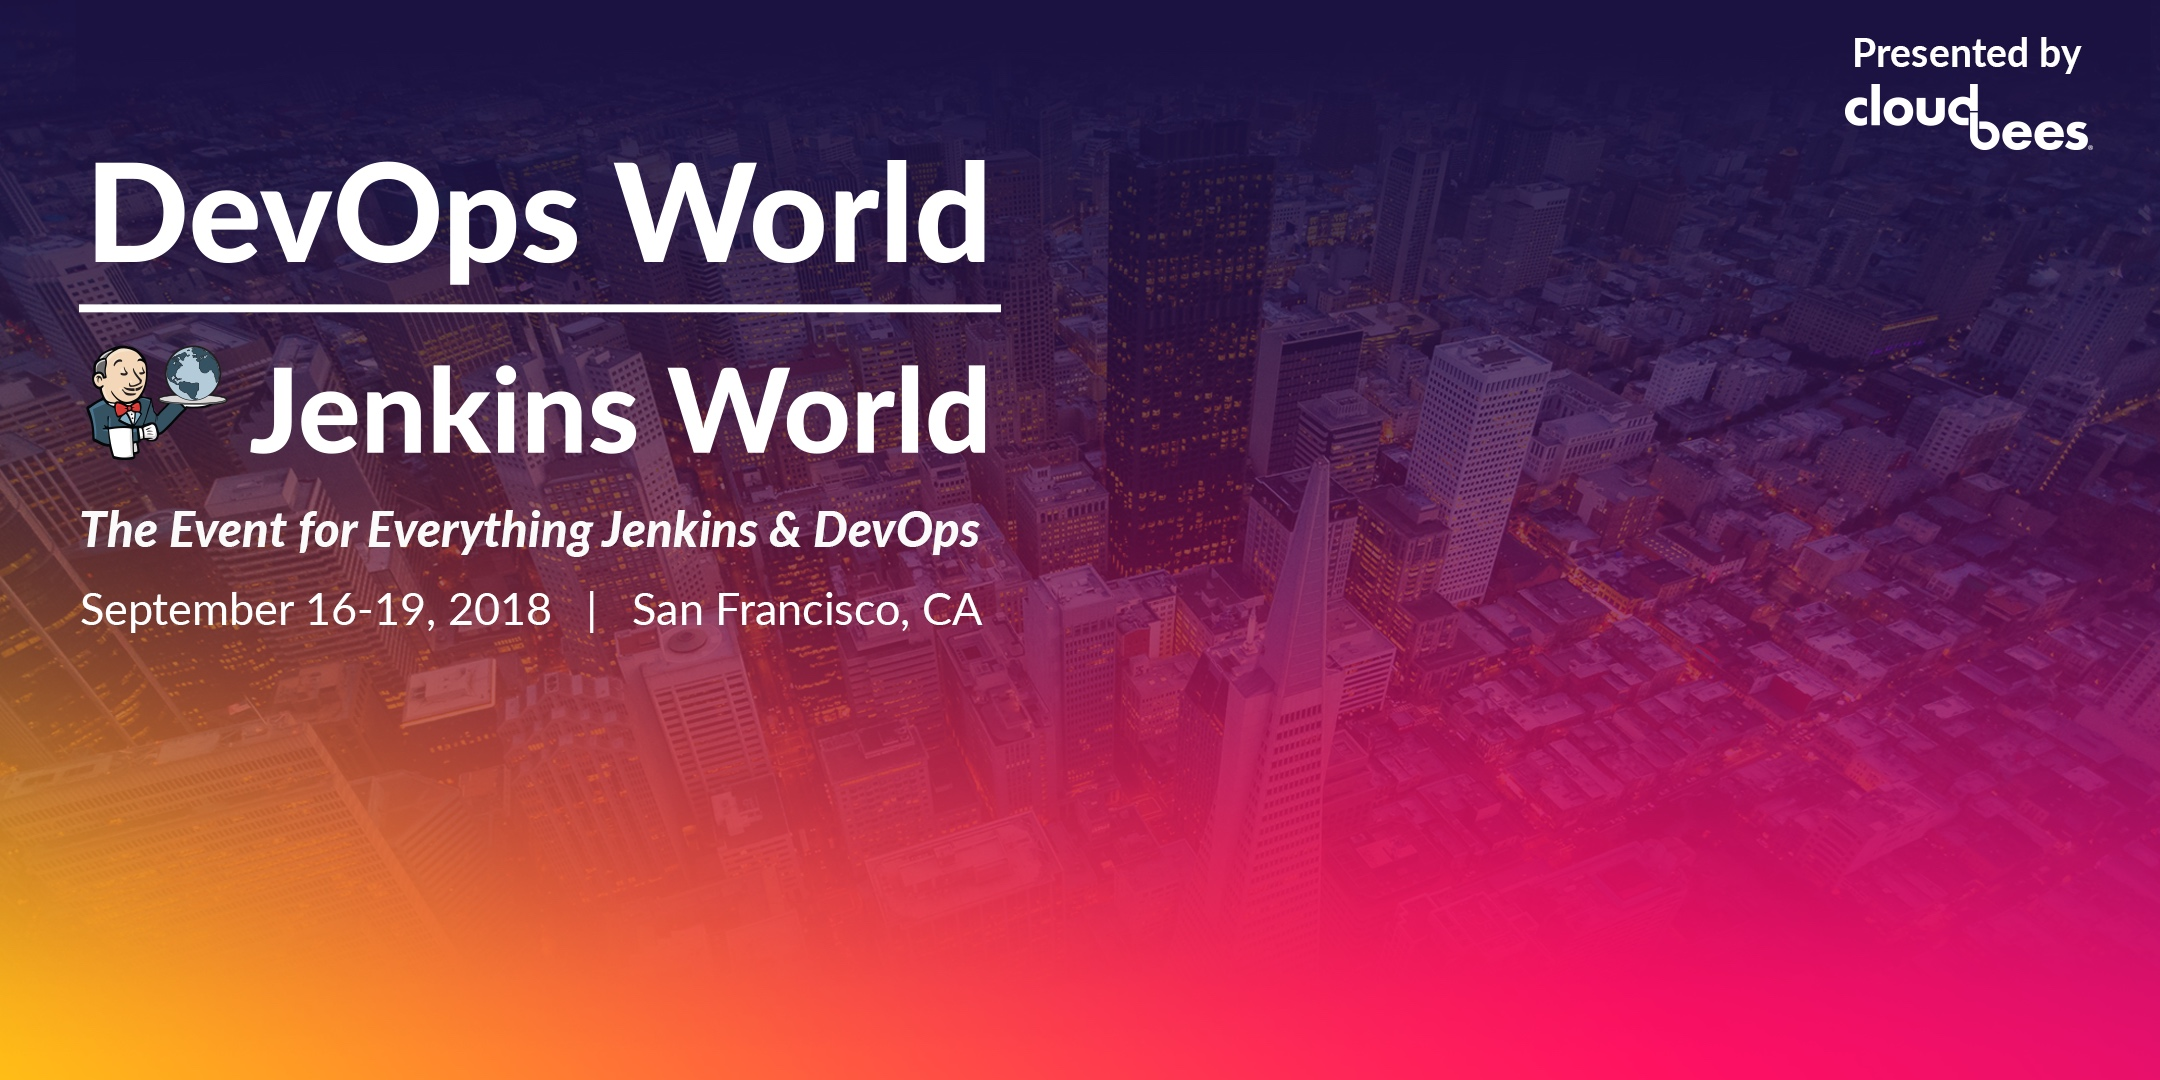 DevOps World | Jenkins World 2018 San Francisco